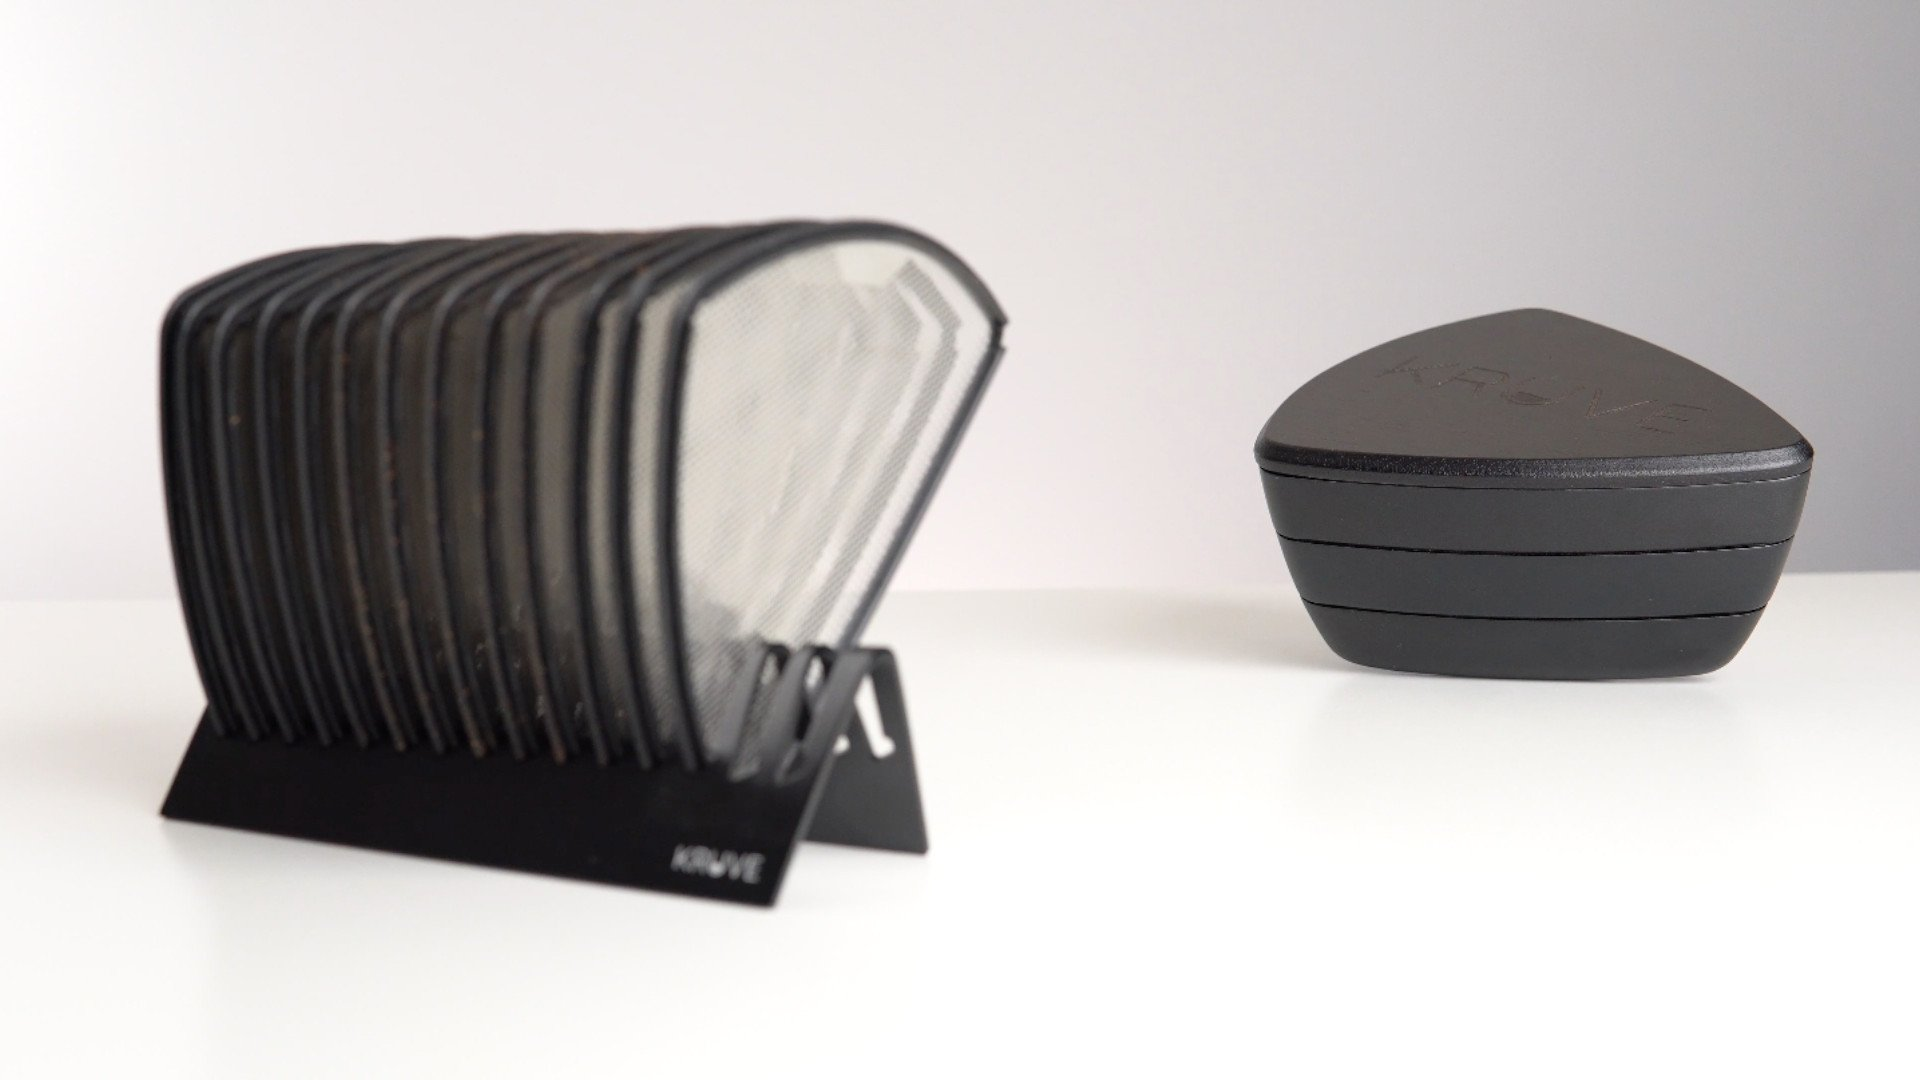 Kruve Sifter Review